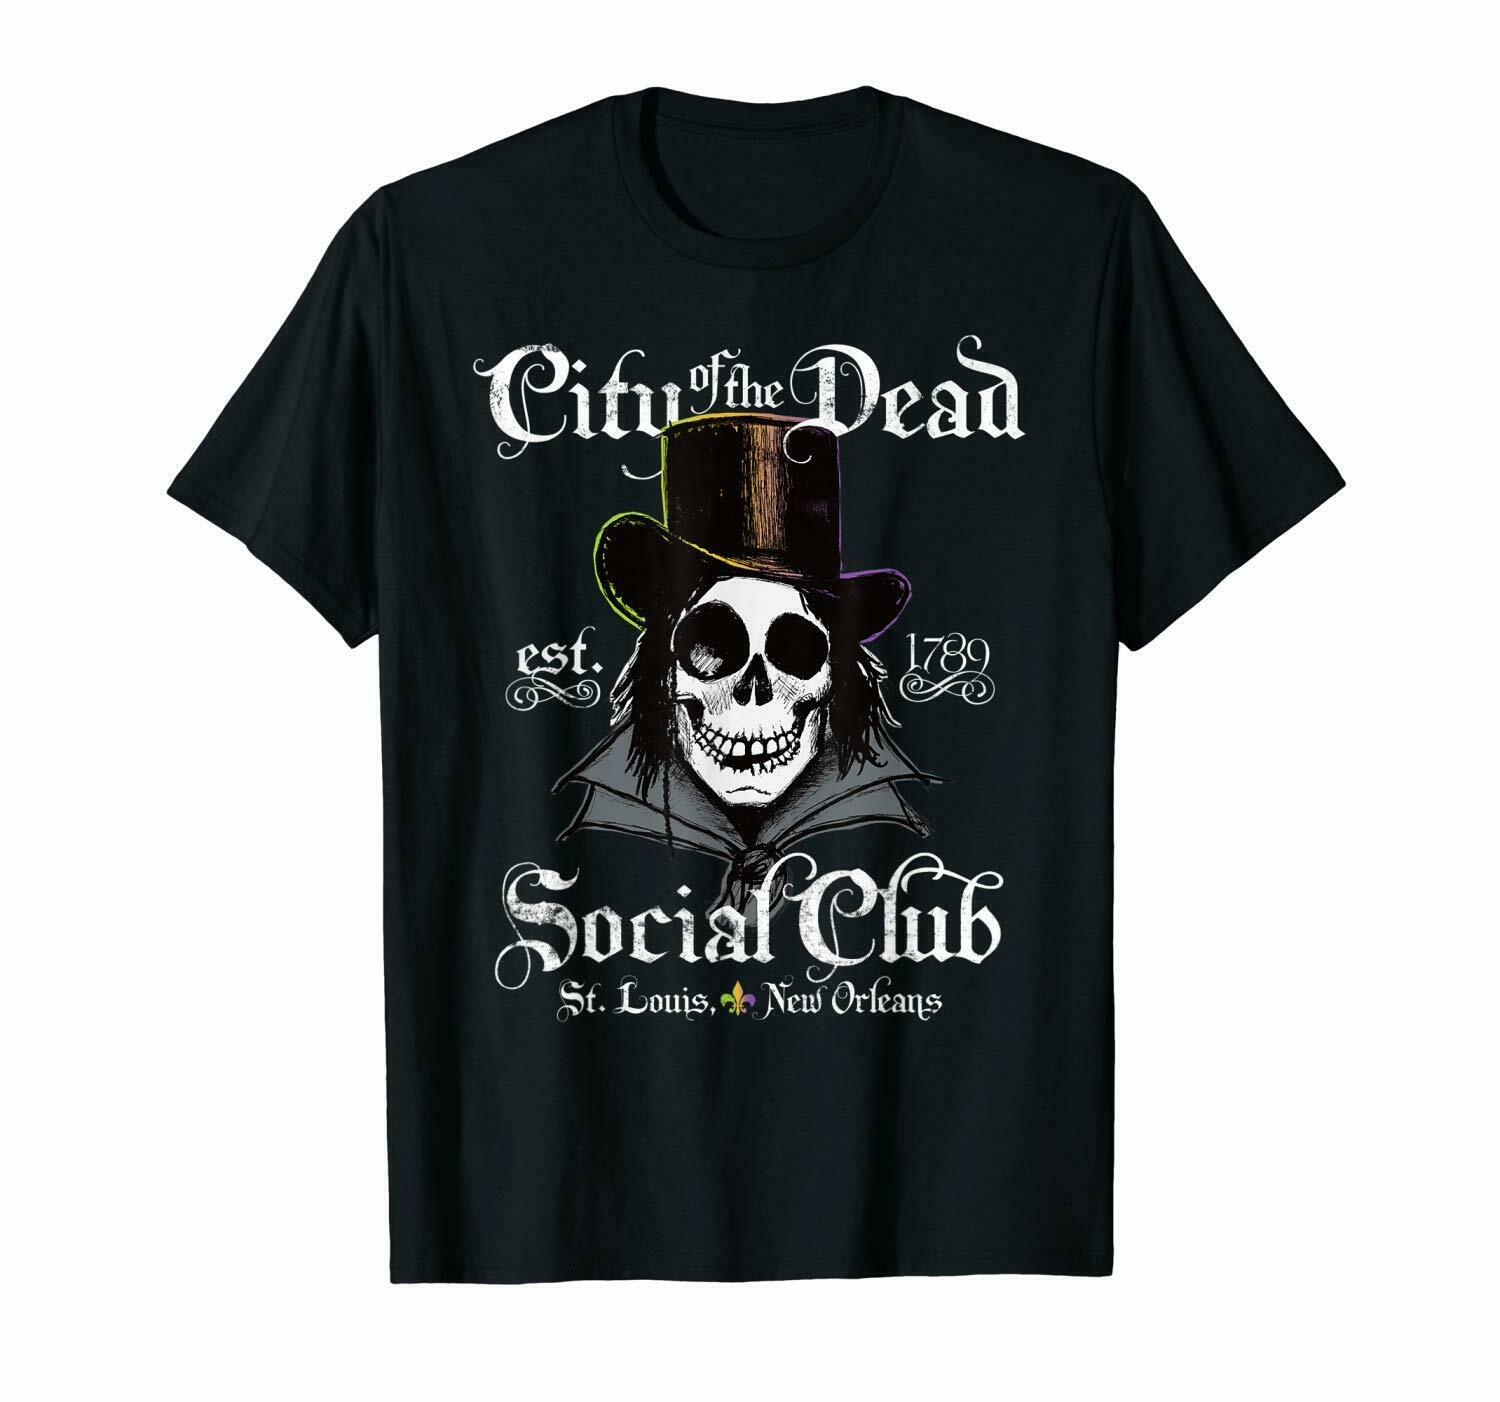 City Of Dead New Orleans Voodoo Doctor Goth Skull Halloween Black T-Shirt S-6XL image